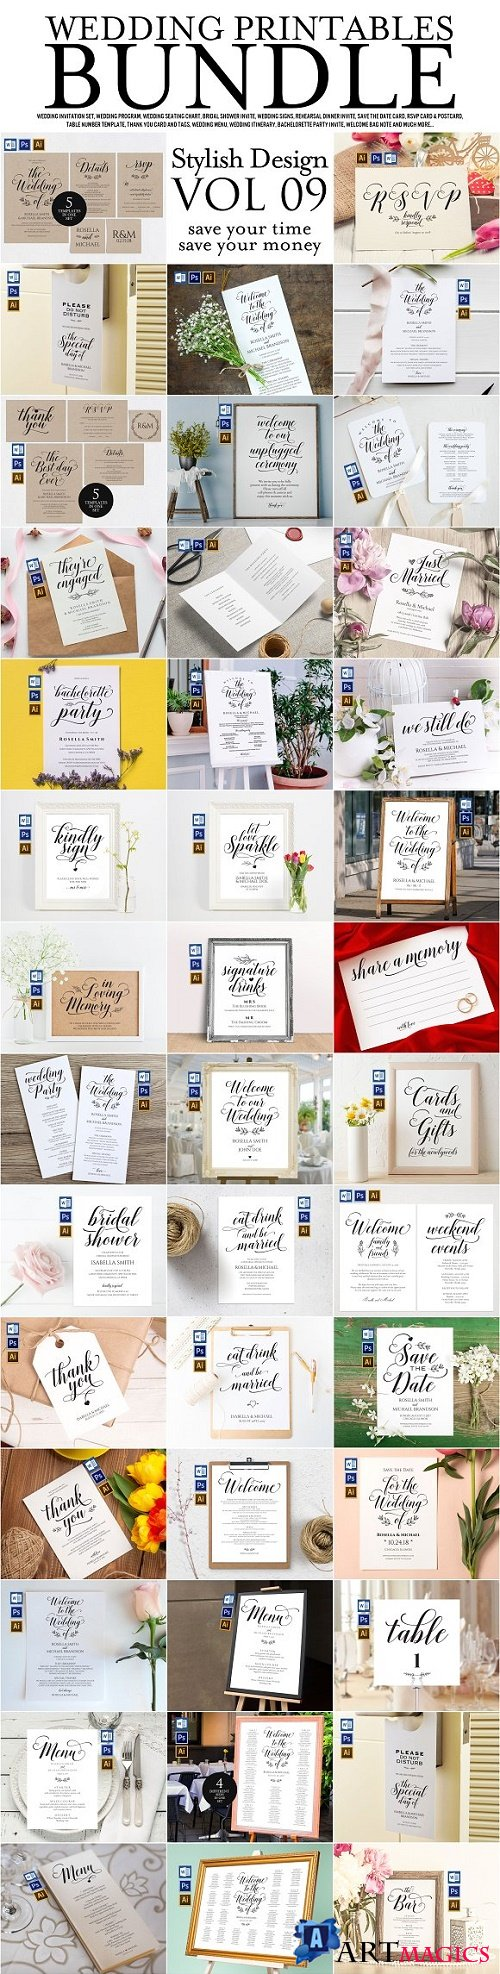 Wedding Printables Bundle Style. 9 2301925